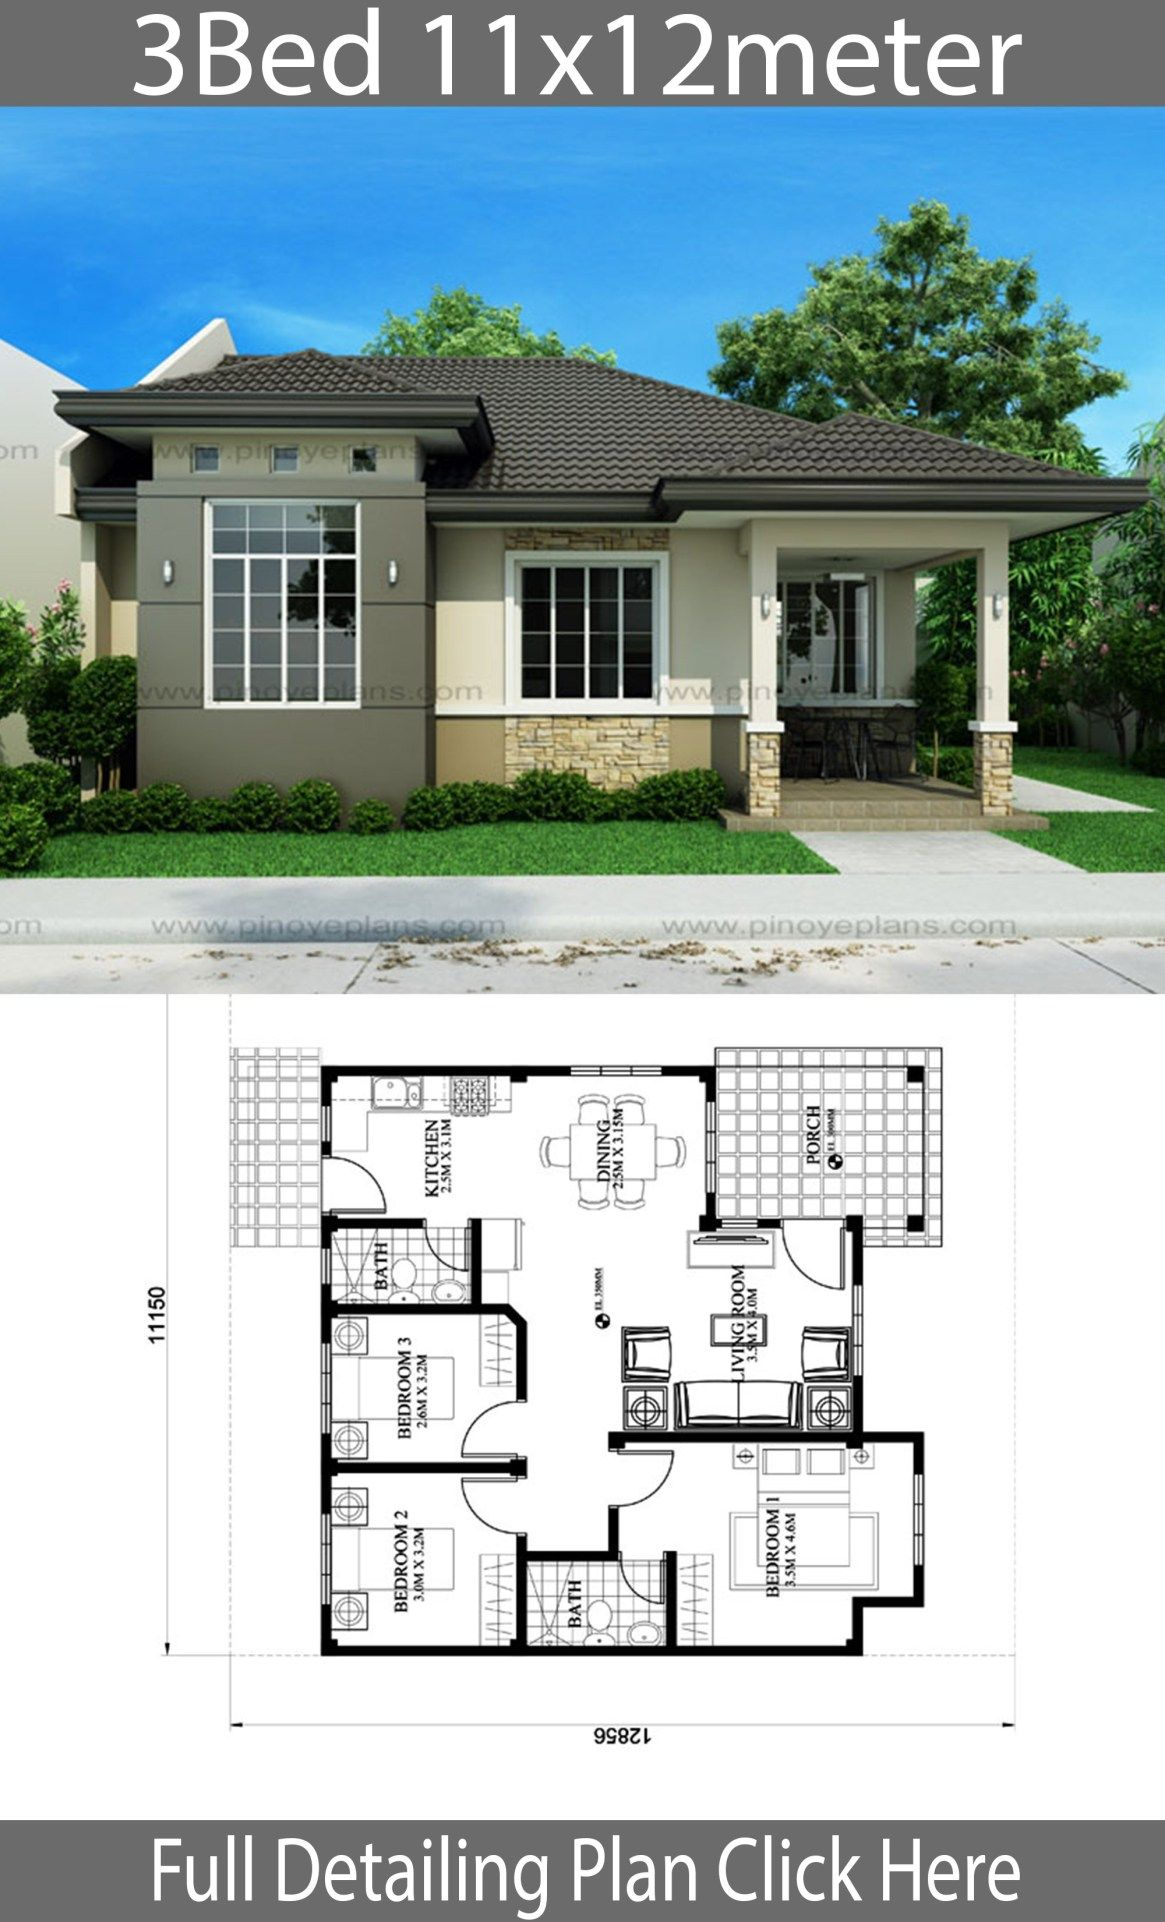 House Design 11x12m With 3 Bedrooms Home Design With Plansearch Bungalow House Design House Plan Gallery Affordable House Plans